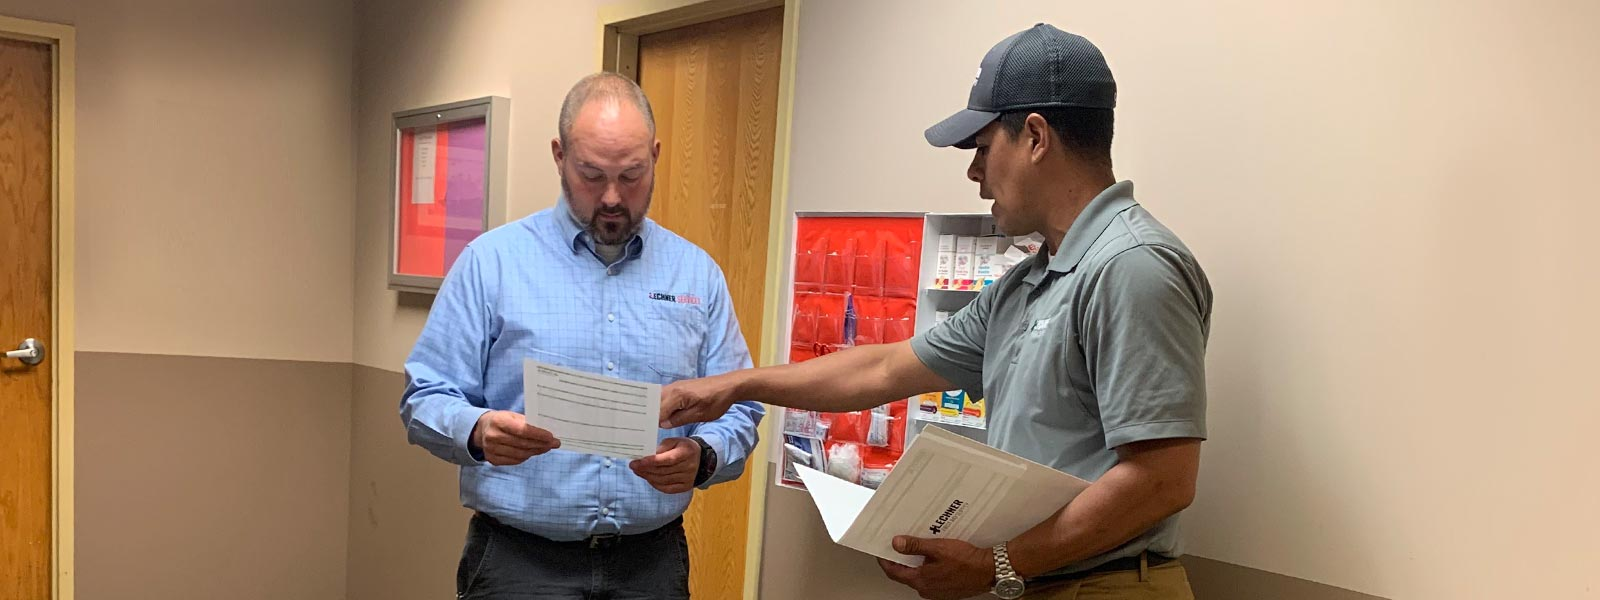 Lechner First Aid Sales Representatives discussing the benefits of a Lechner First Aid Program/ First Aid Service with a safety manager.